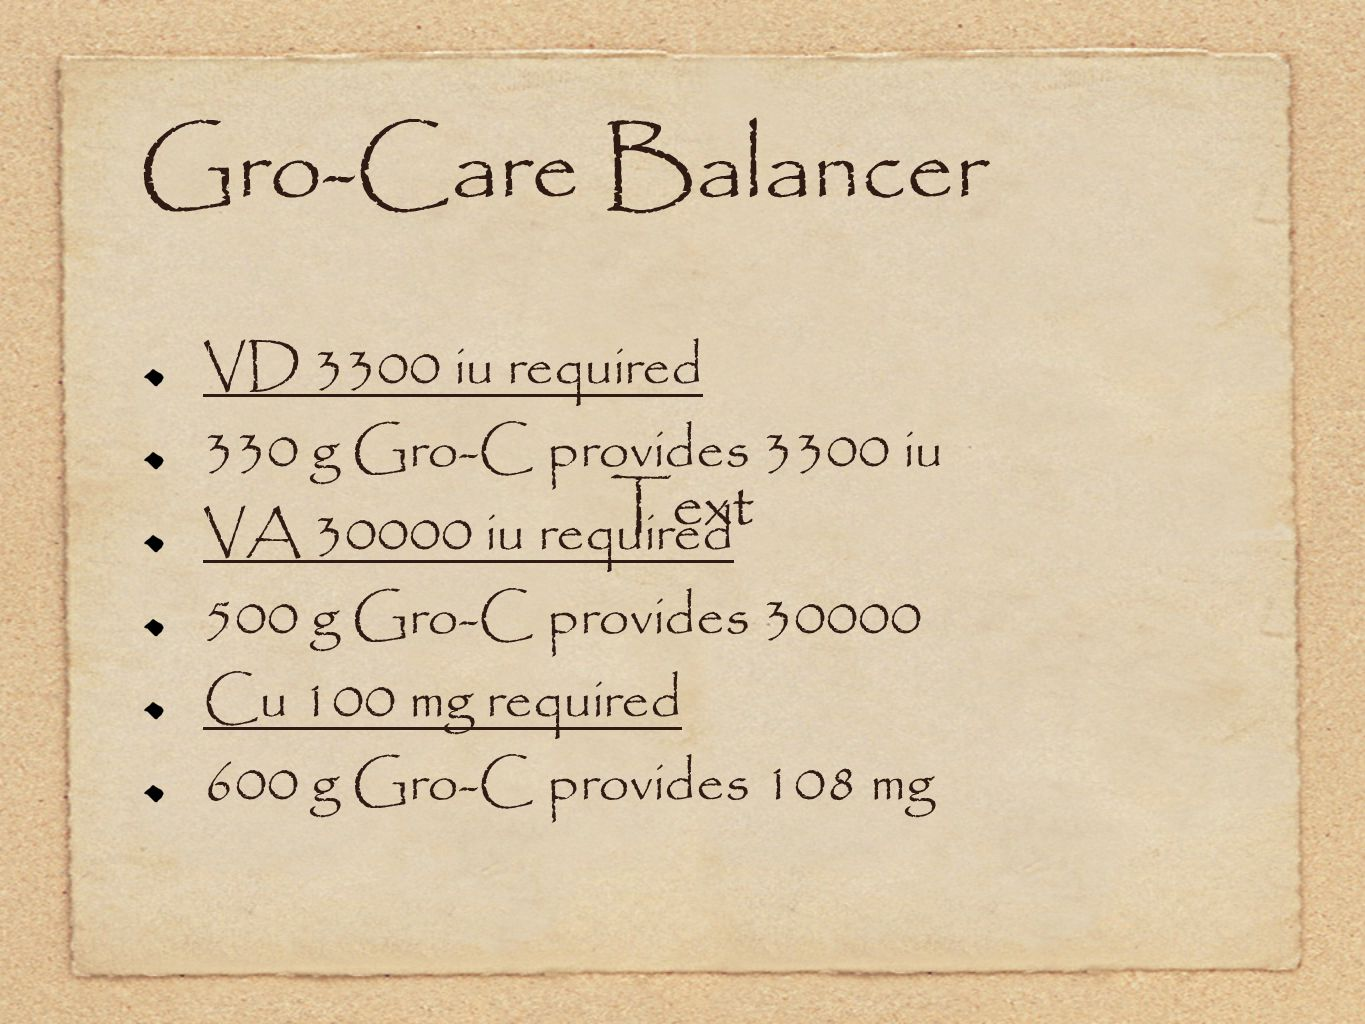 Gro-Care Balancer VD 3300 iu required 330 g Gro-C provides 3300 iu VA 30000 iu required 500 g Gro-C provides 30000 Cu 100 mg required 600 g Gro-C provides 108 mg Text